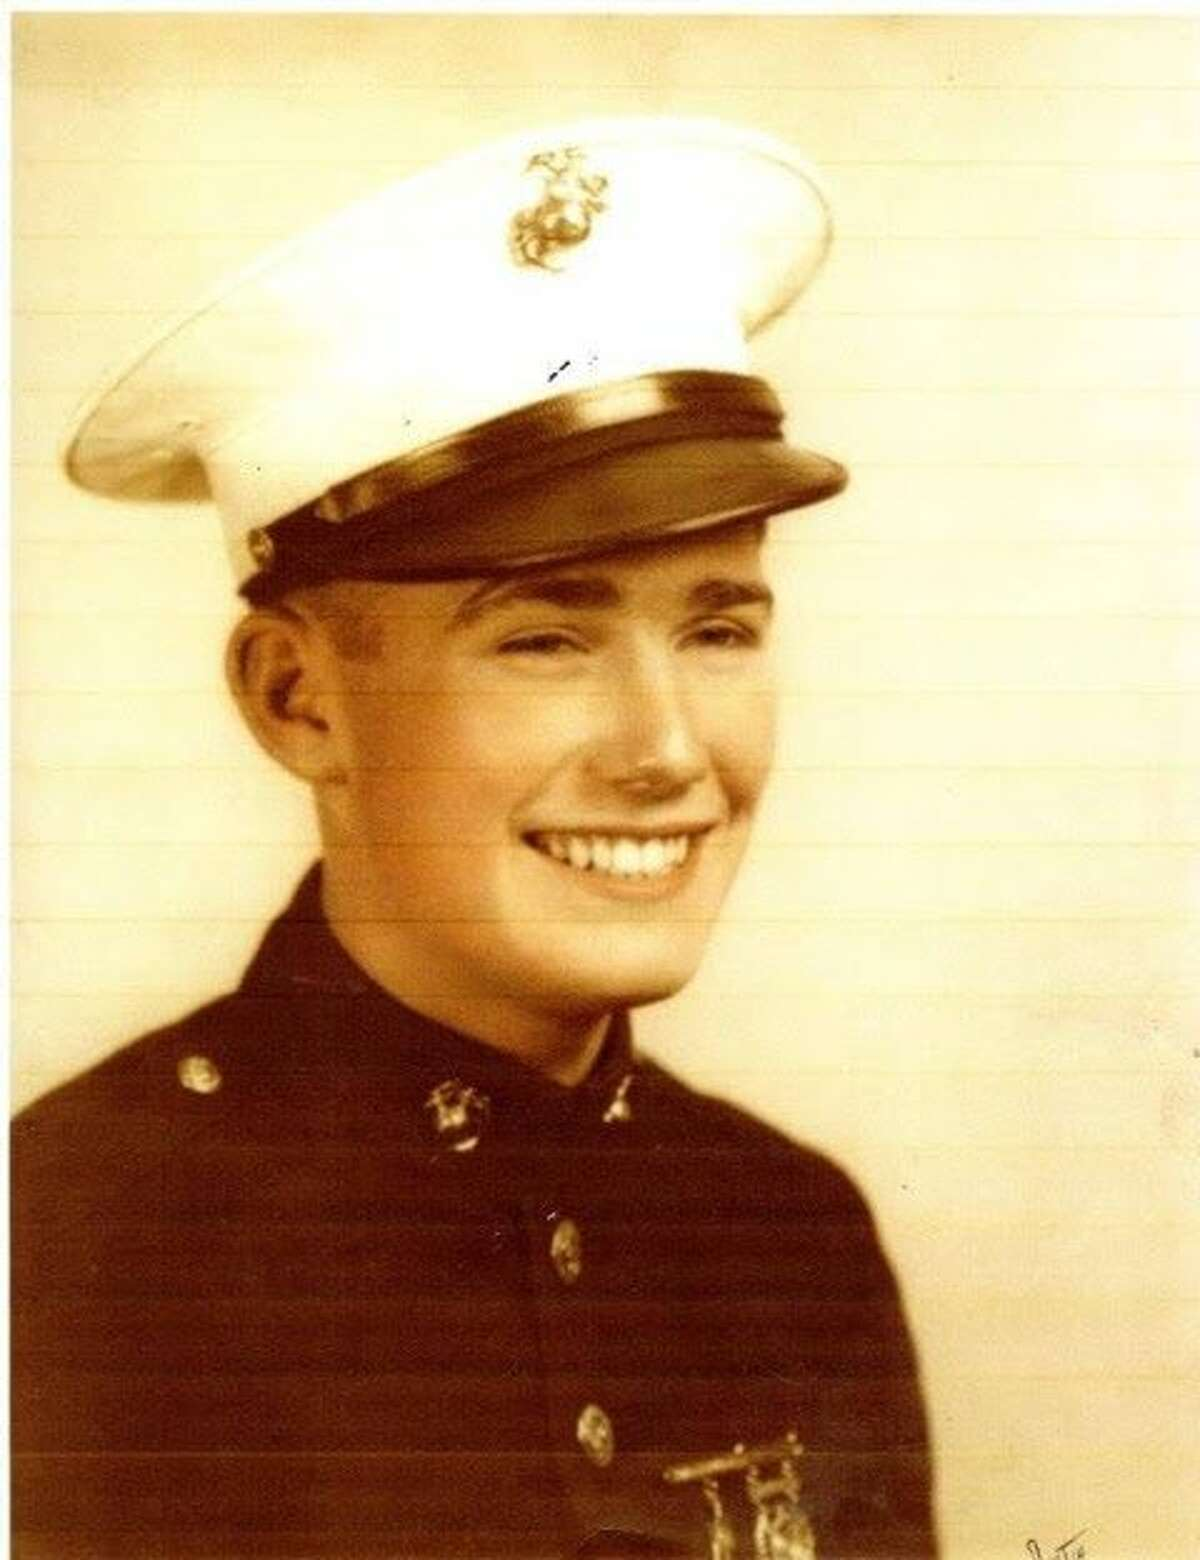 John Stevens during his boot camp graduation ceremony in 1939.